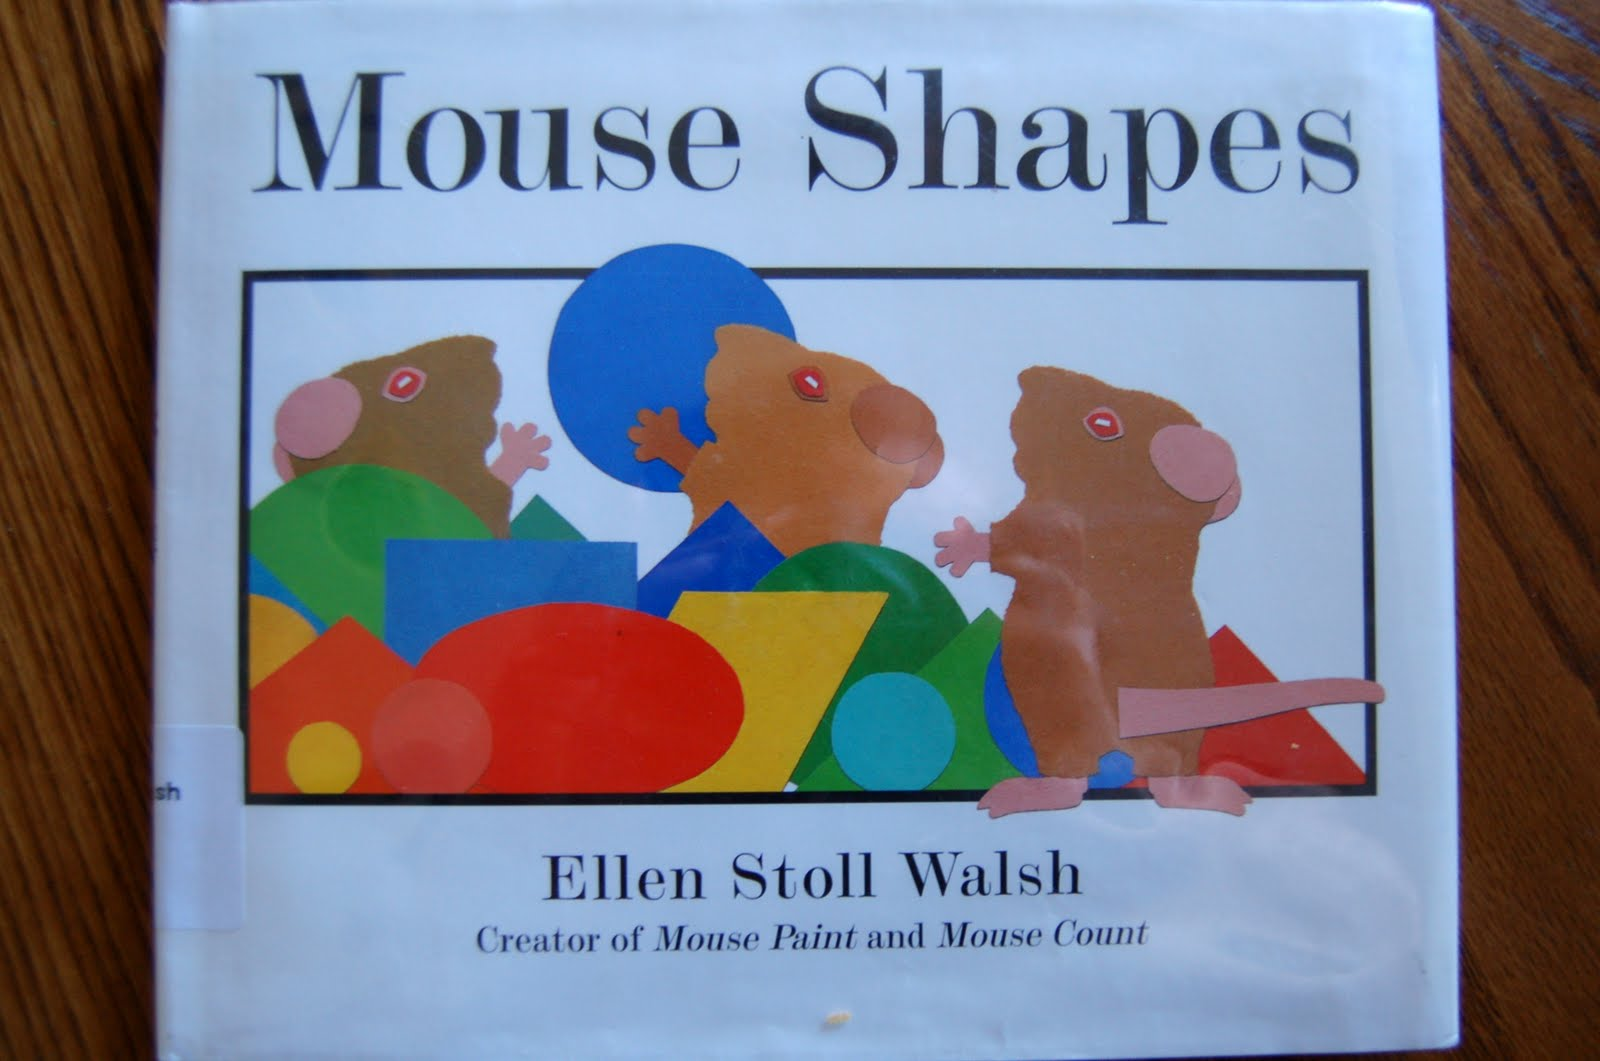 Mouse Shapes I Heart Crafty Things Cute Origami Diagram It Is A Story About 3 Mice Who Are Trying To Get Away From Cat They Run Into Pile Of And Make All Sorts Different Out